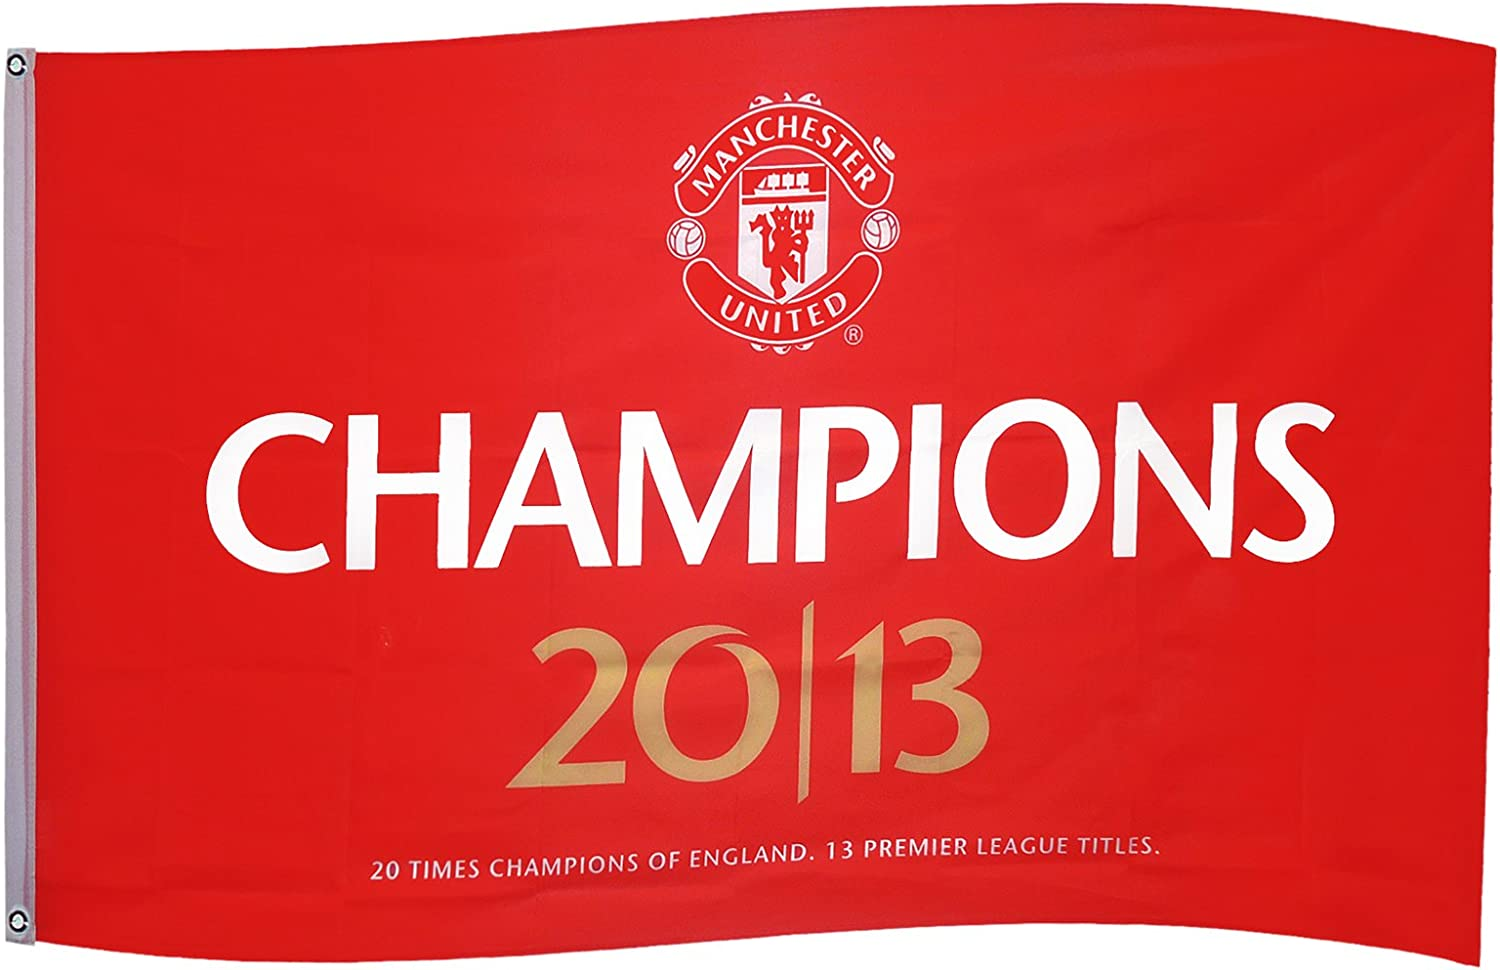 Manchester United 20 League Titles Flag Multi Colour Amazon Co Uk Sports Outdoors